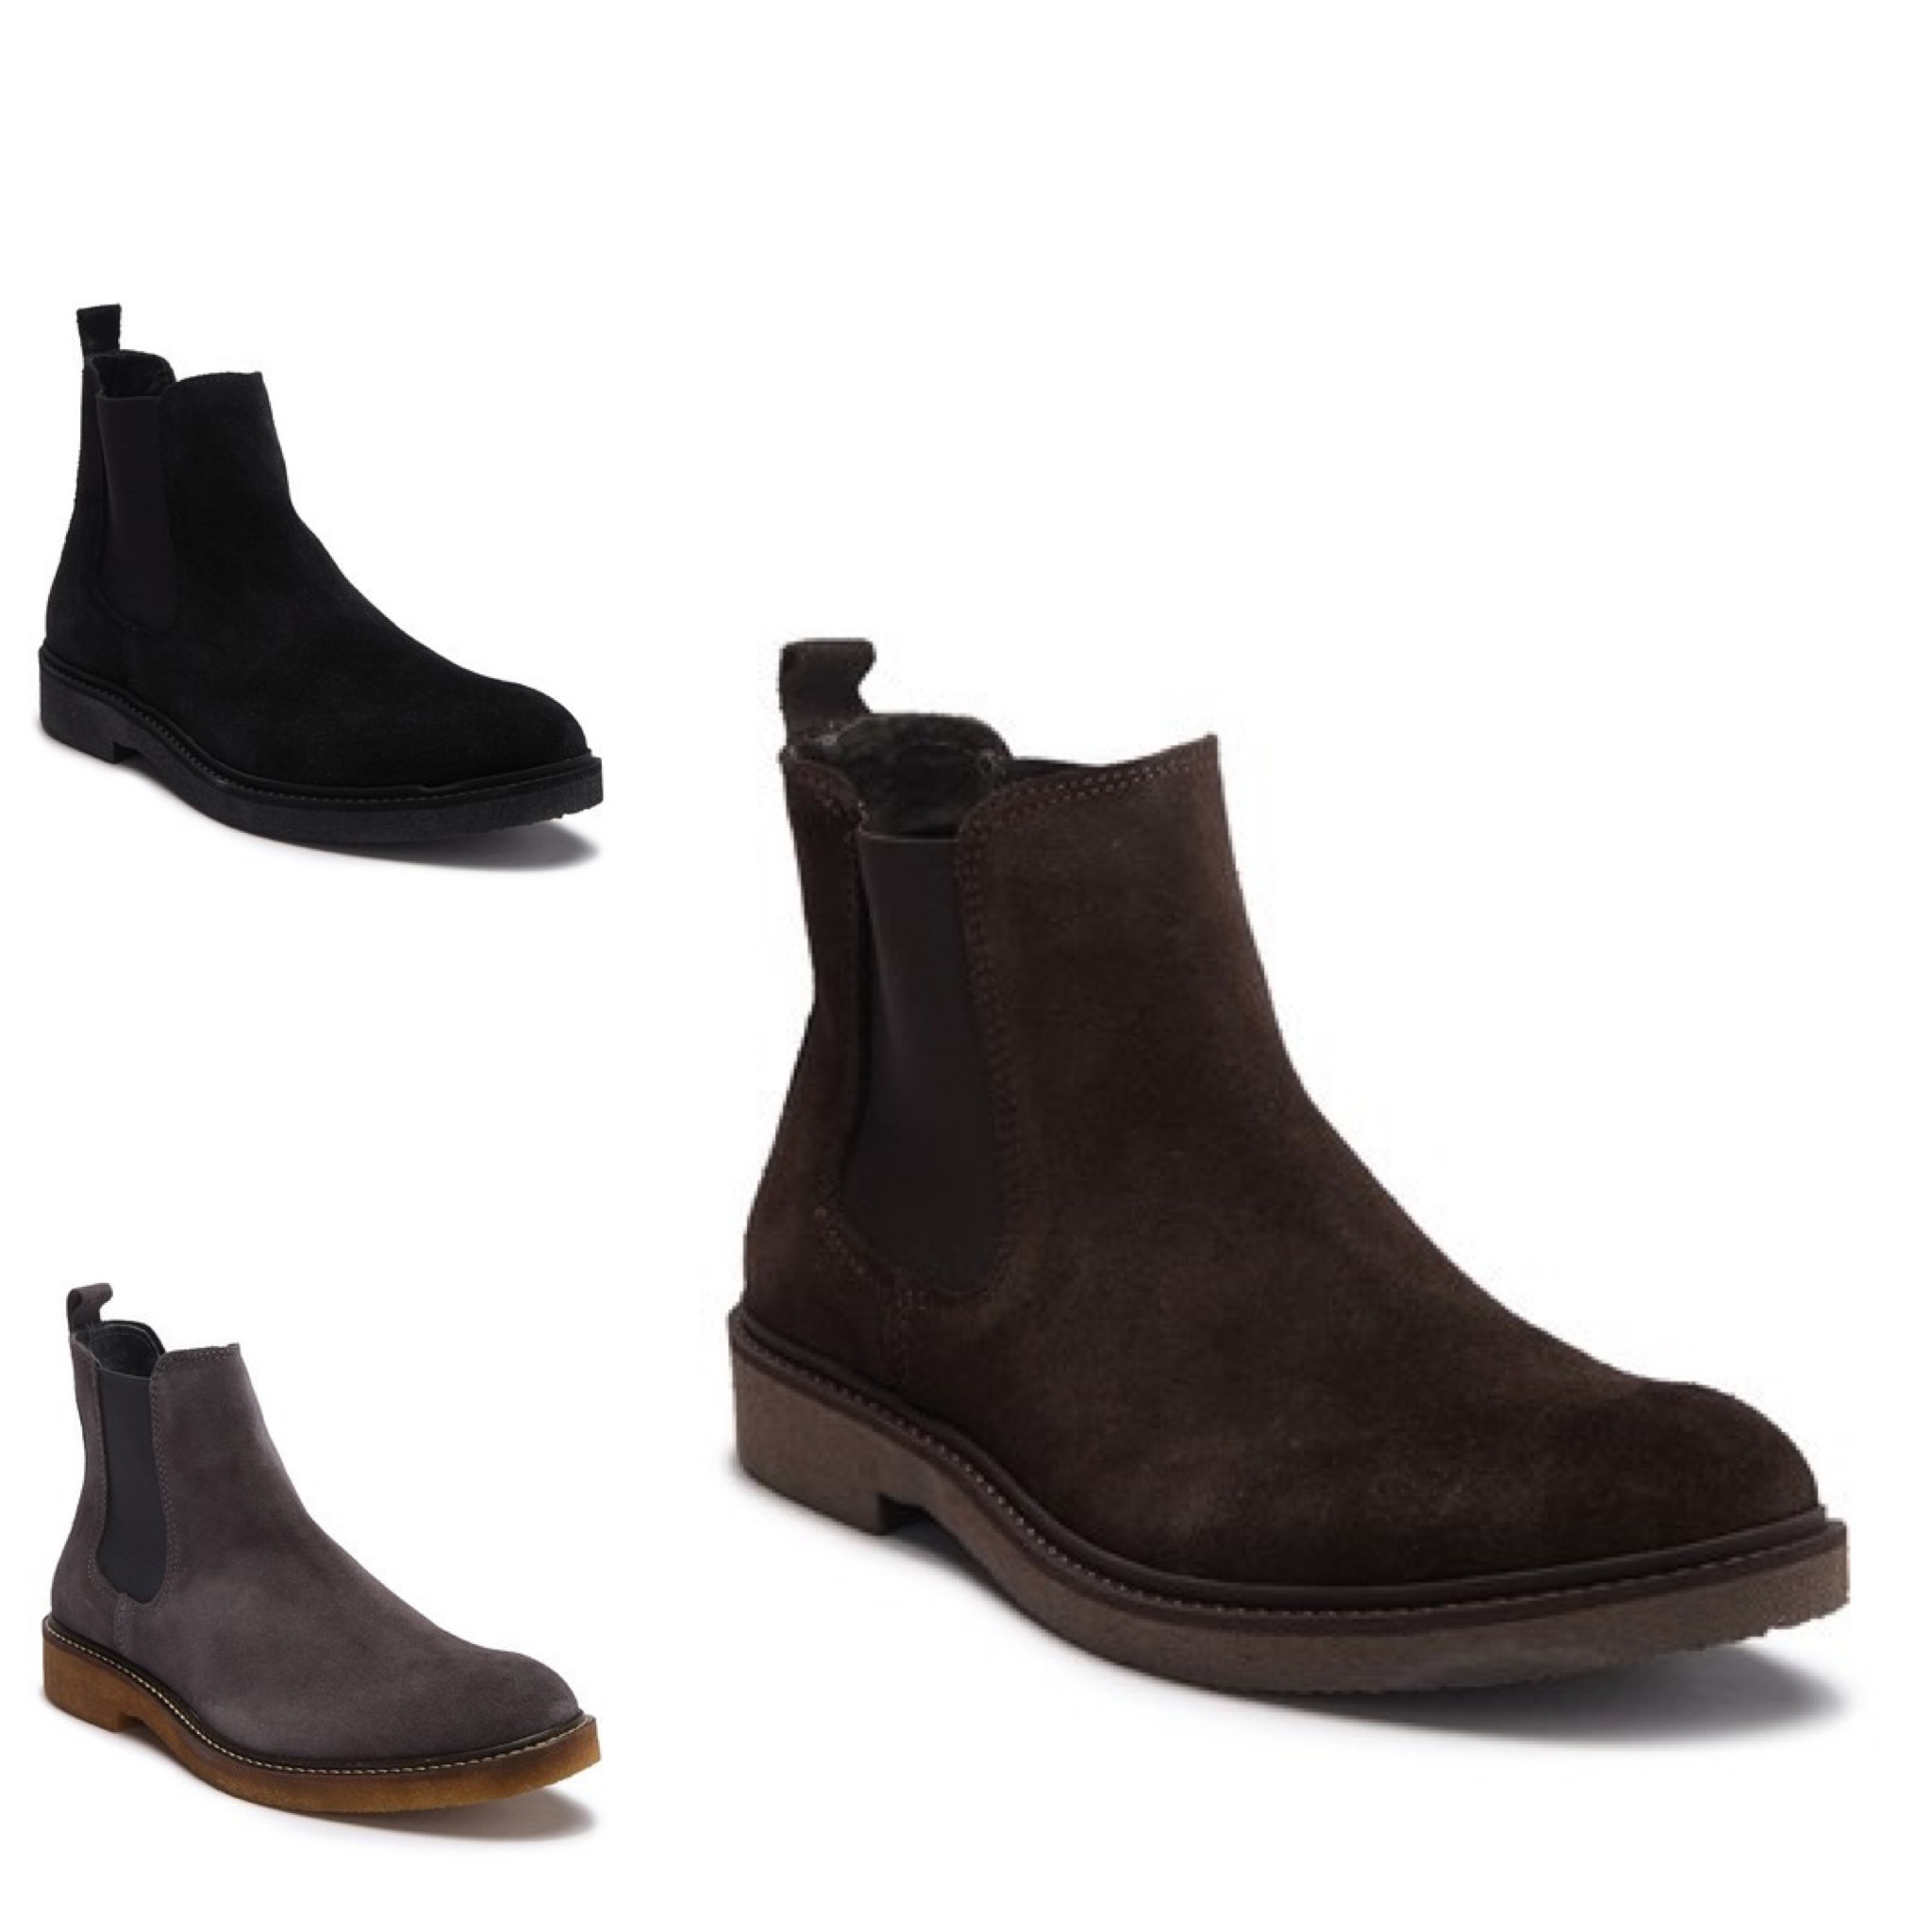 4e673f2b012 SUPPLY LAB CHARLES CHELSEA BOOTS STARTING AT $59.99 — STEALS